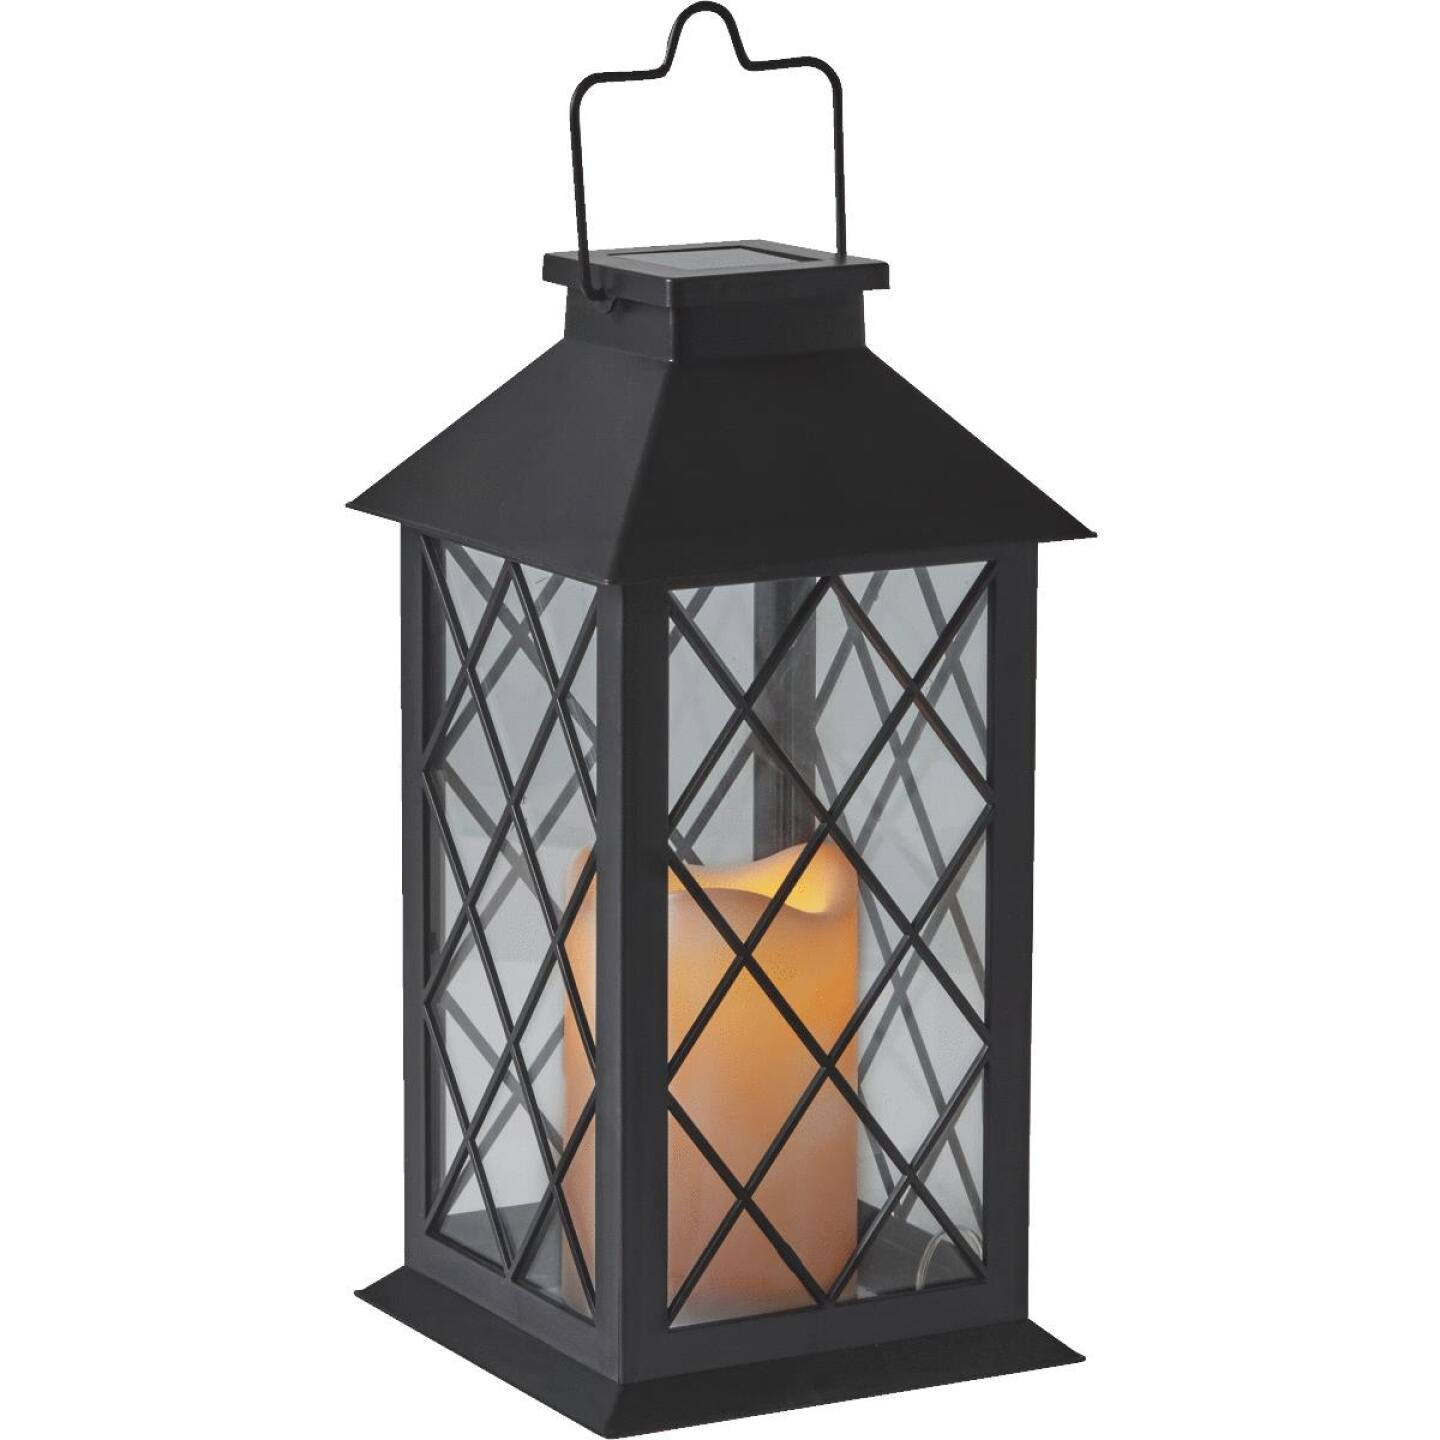 Gardman Cole and Bright 5.5 In. W. x 11 In. H. x 5.5 In. D. Amber Candle Light Plastic LED Solar Lantern Image 3